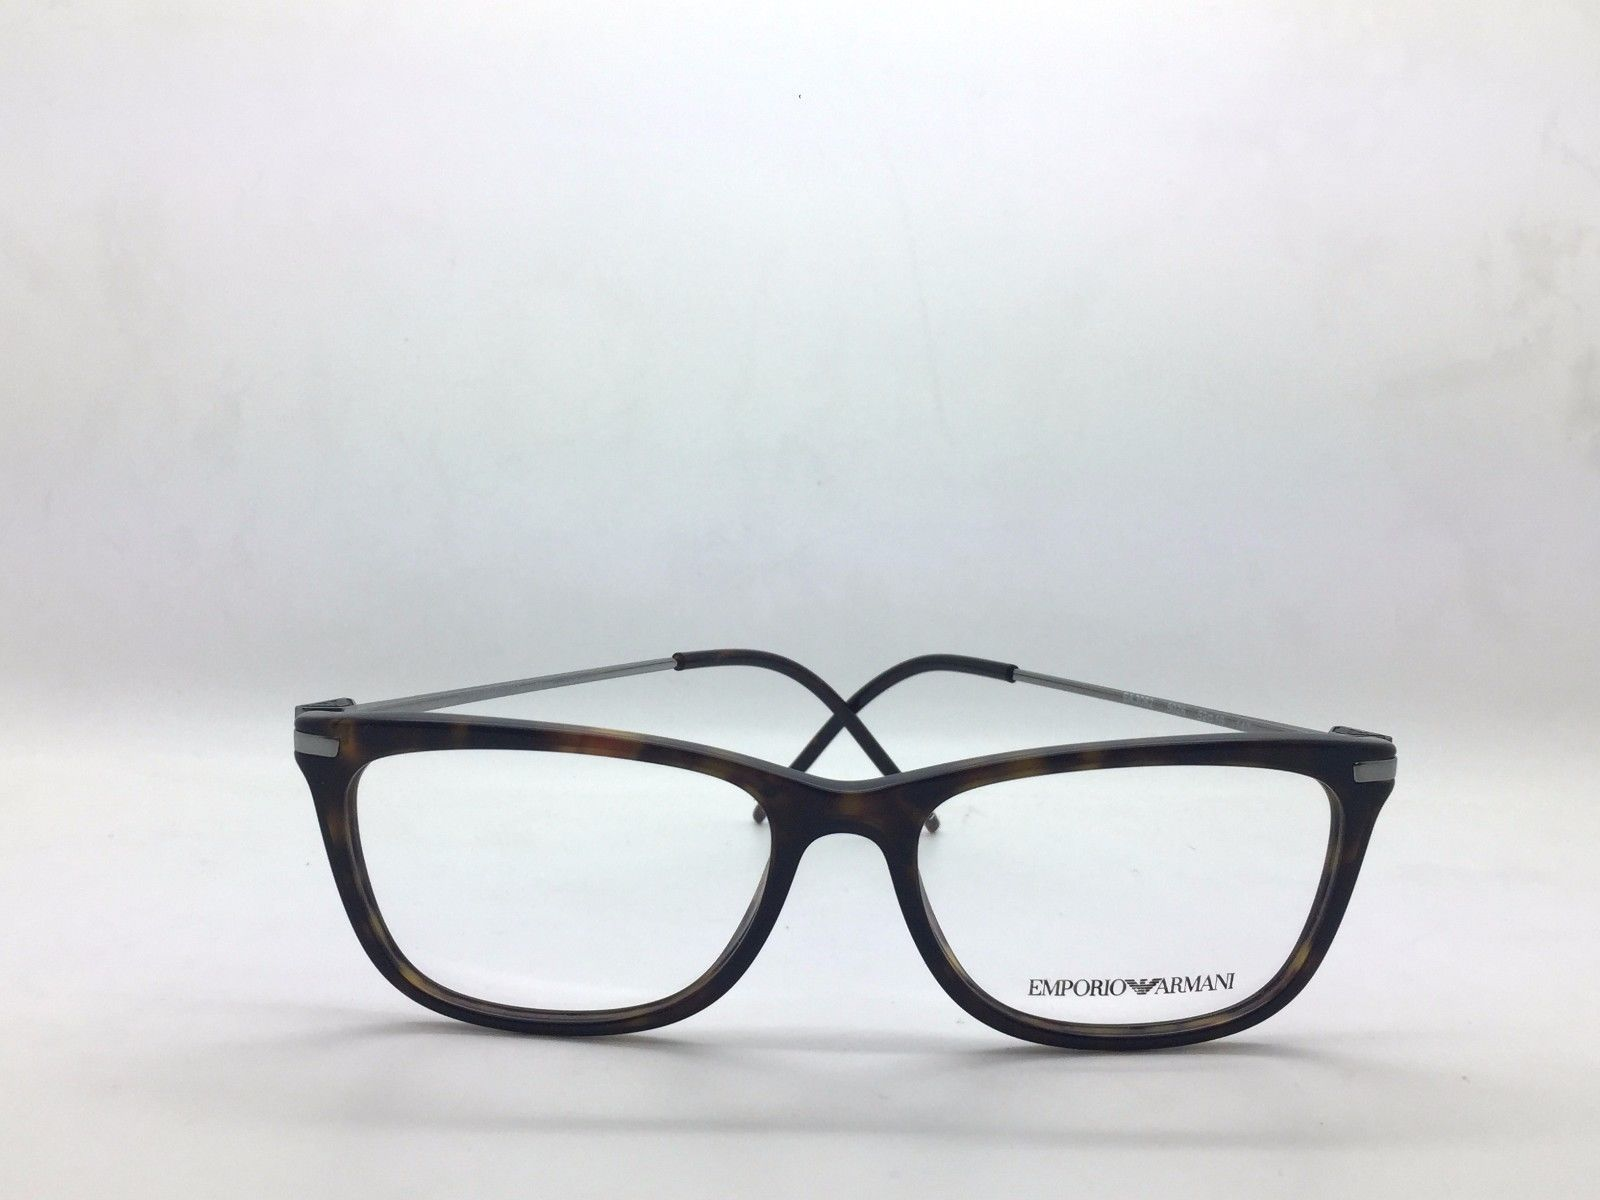 5769bf740af EMPORIO ARMANI Havana Eyeglasses EA 3062 5026 100% Authentic! NEW!